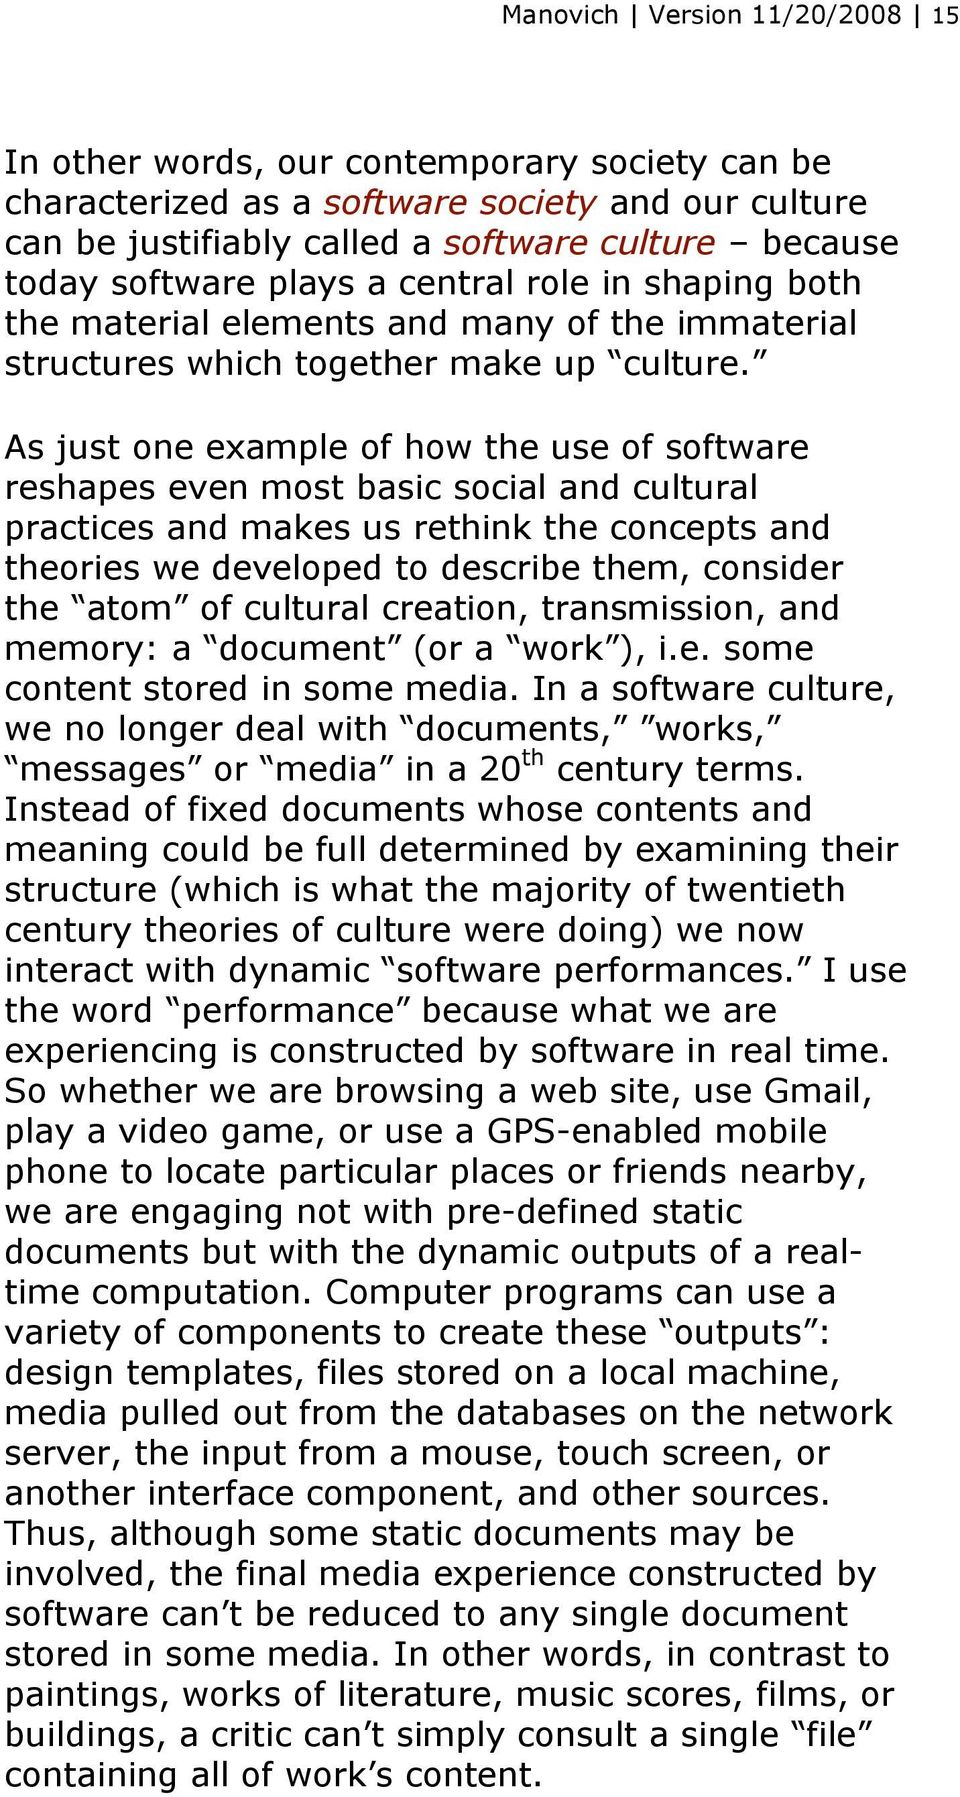 As just one example of how the use of software reshapes even most basic social and cultural practices and makes us rethink the concepts and theories we developed to describe them, consider the atom